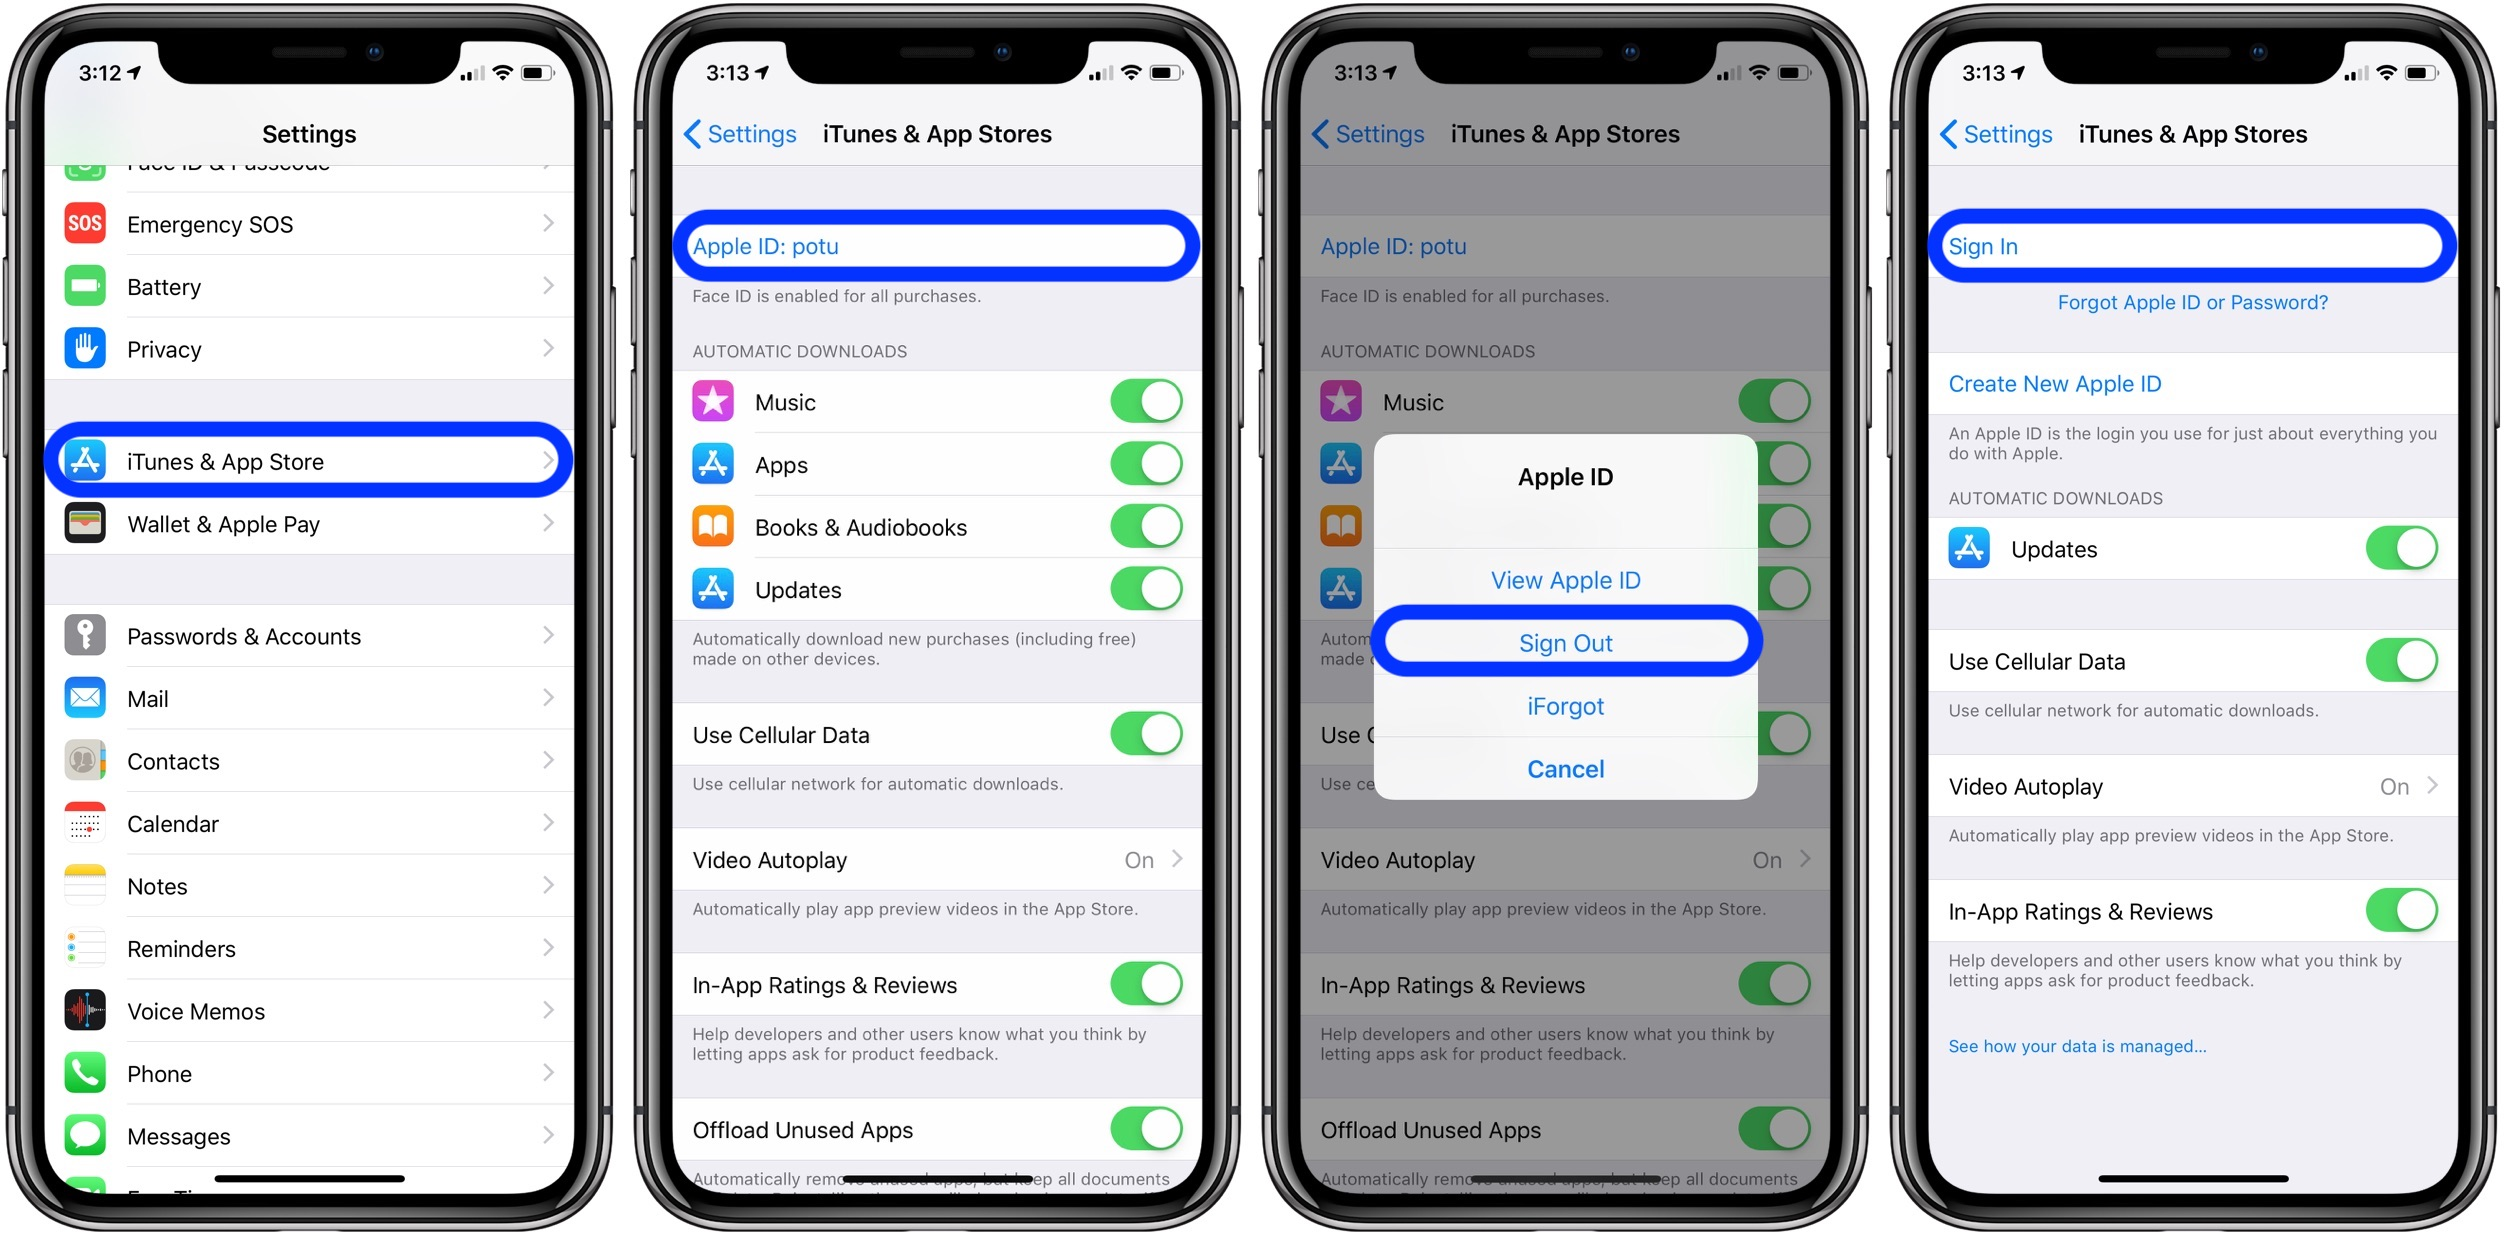 How to change your iTunes and App Store Apple ID on iPhone - 9to5Mac